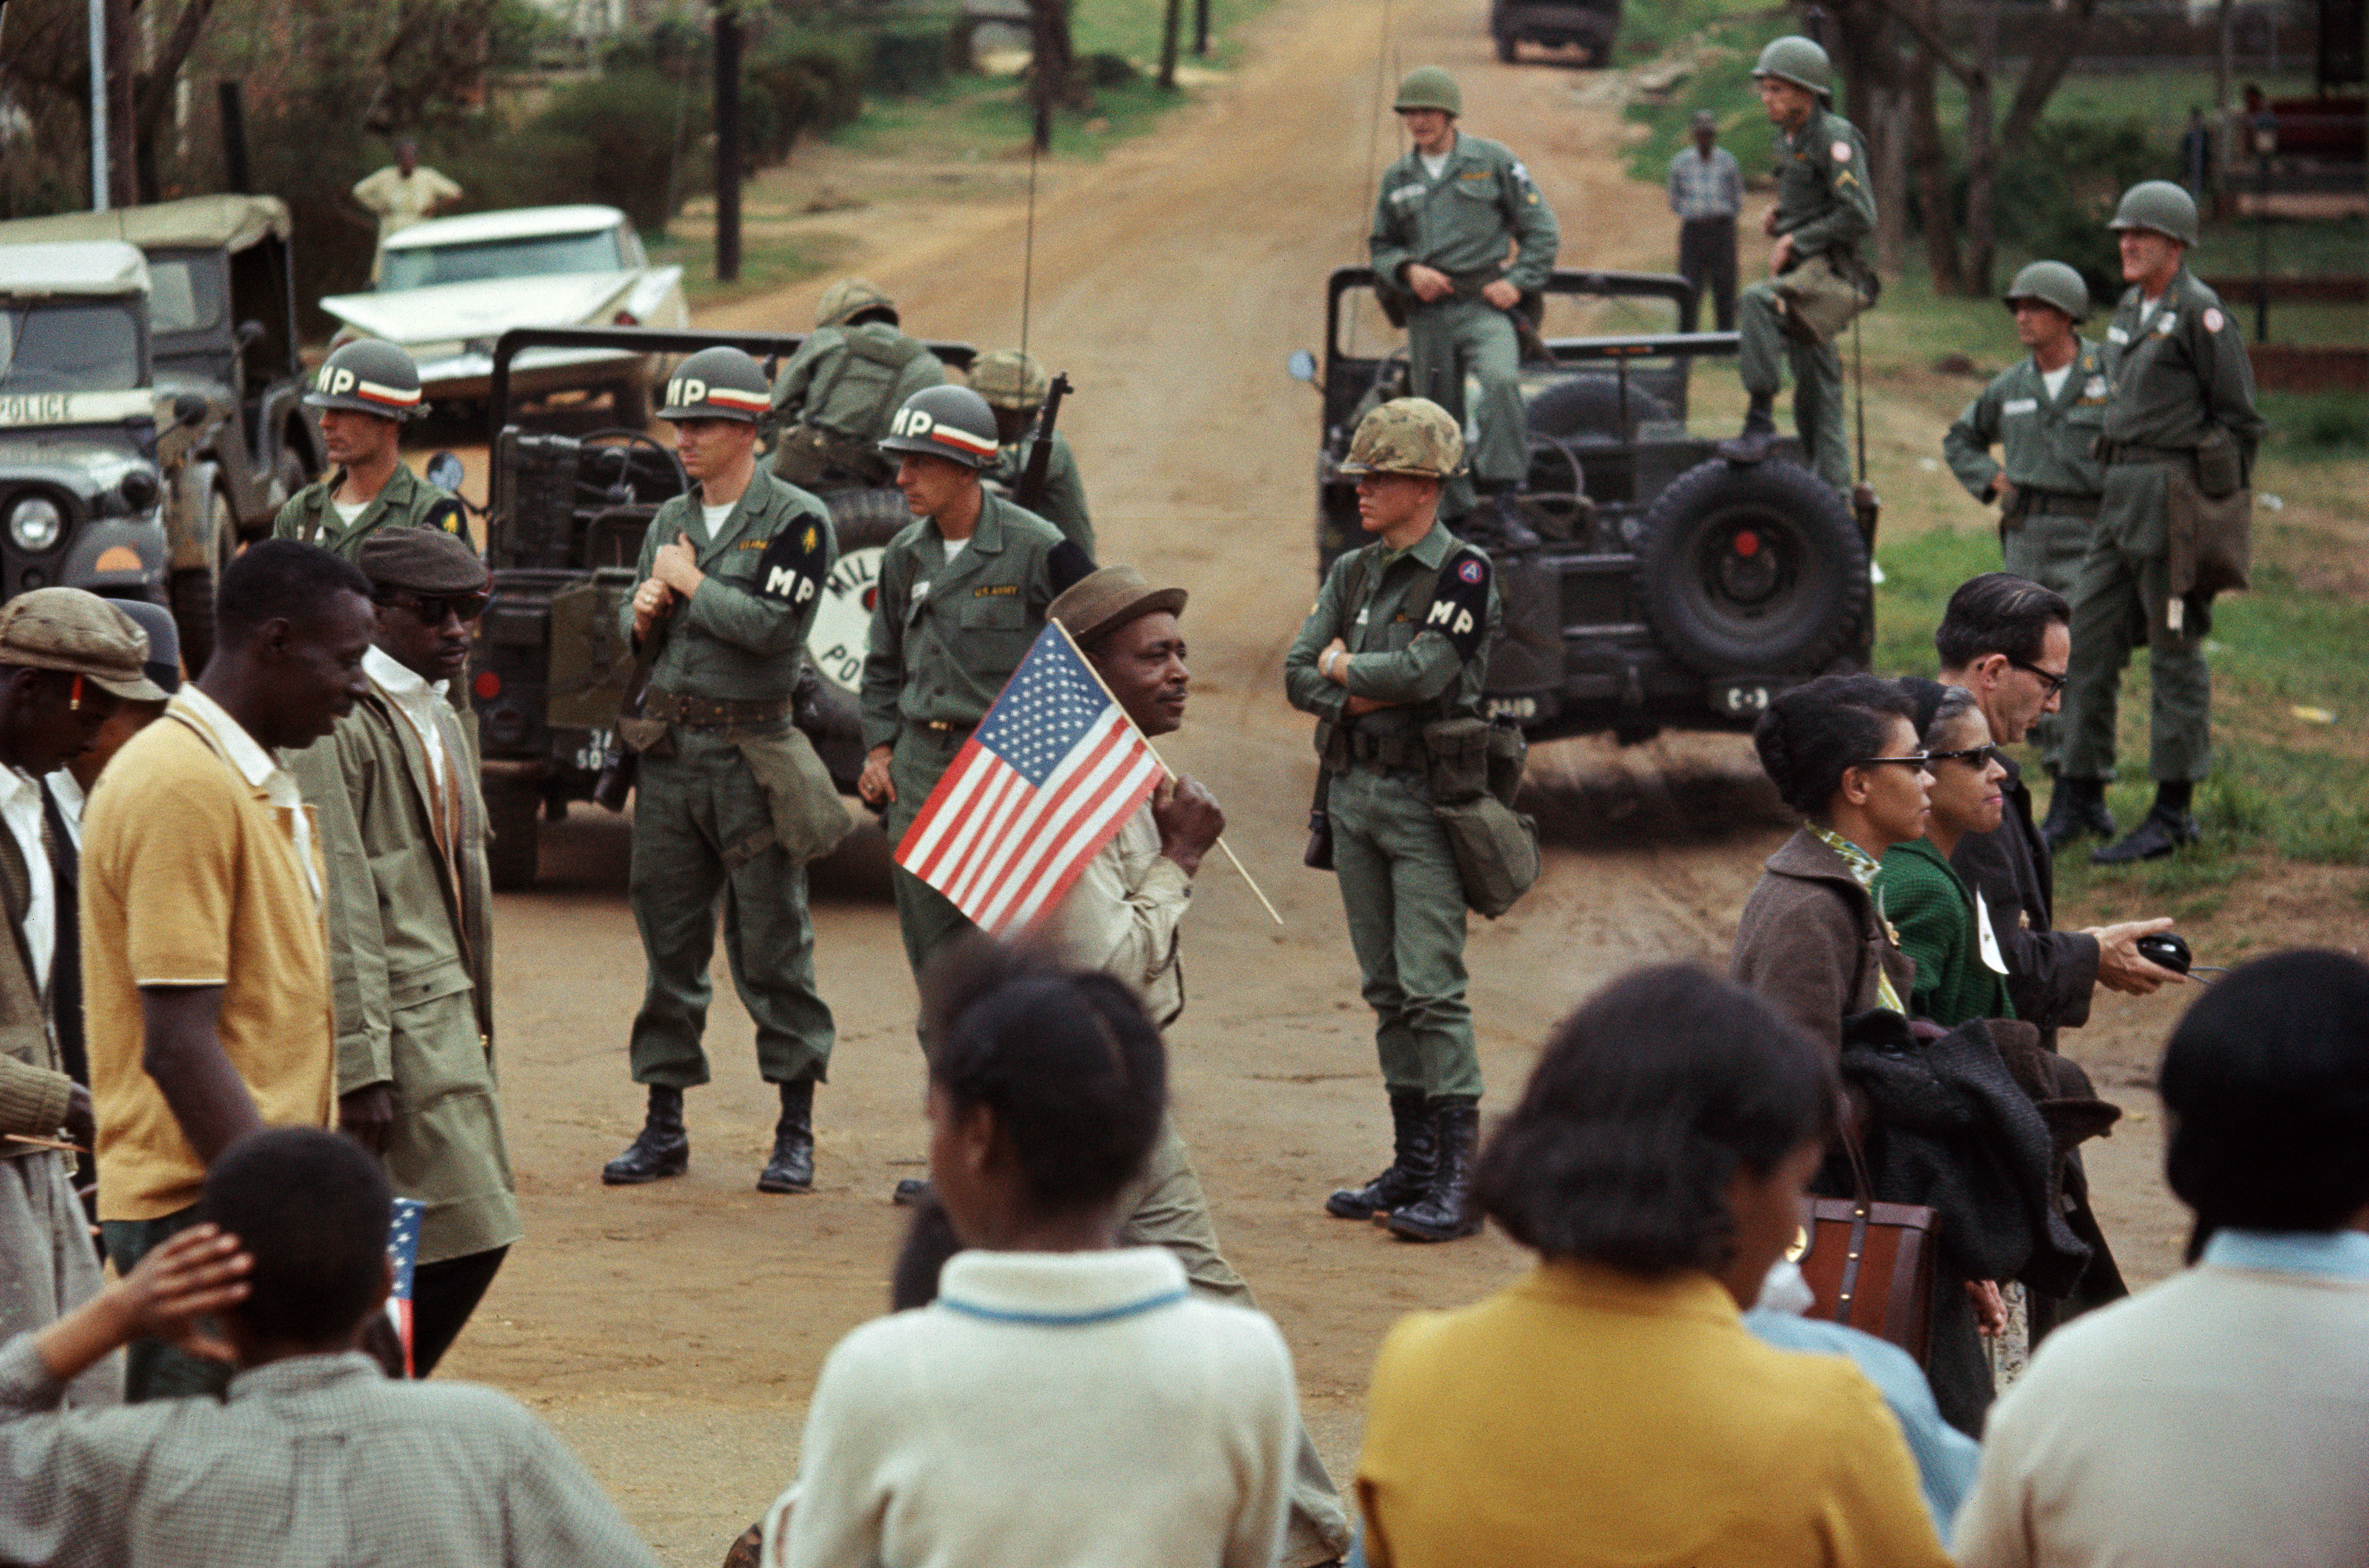 Stephen Somerstein, Man with American flag and marchers walking past federal troops guarding crossroads, 1965. Courtesy of the photographer